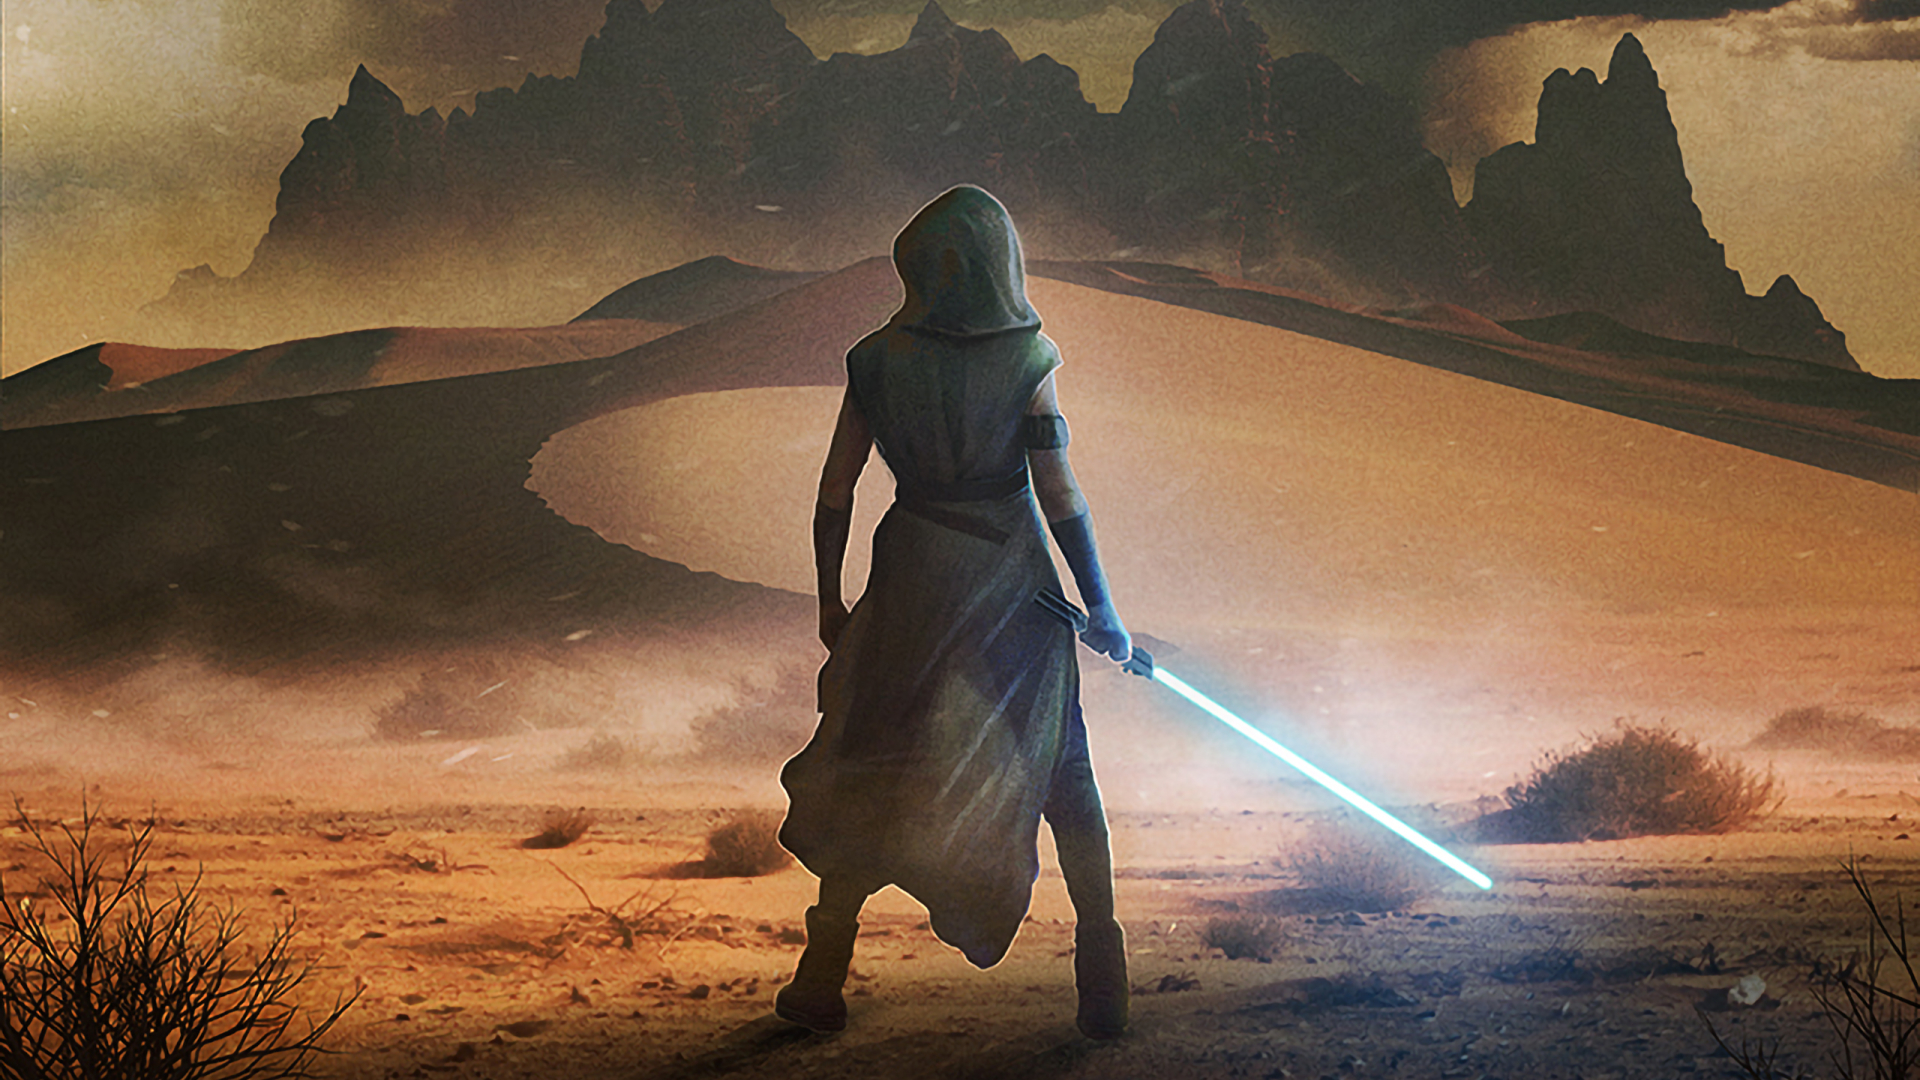 7680x4320 New Star Wars Skywalker Art 8k Wallpaper Hd Movies 4k Wallpapers Images Photos And Background